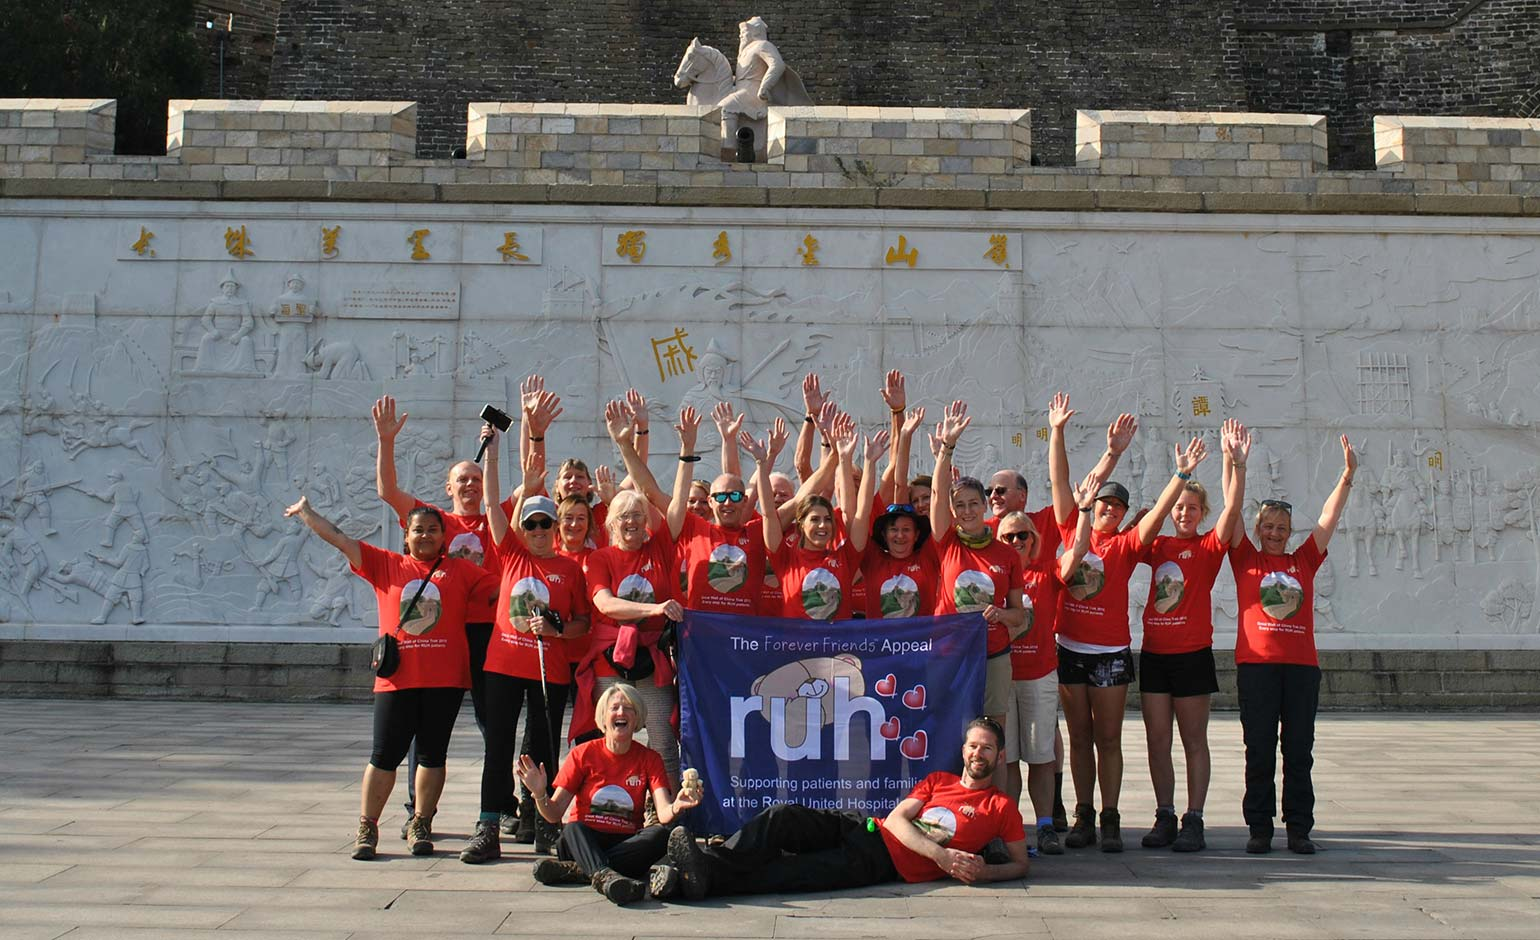 Adventurous locals raise £30k for RUH by trekking the Great Wall of China | Bath Echo